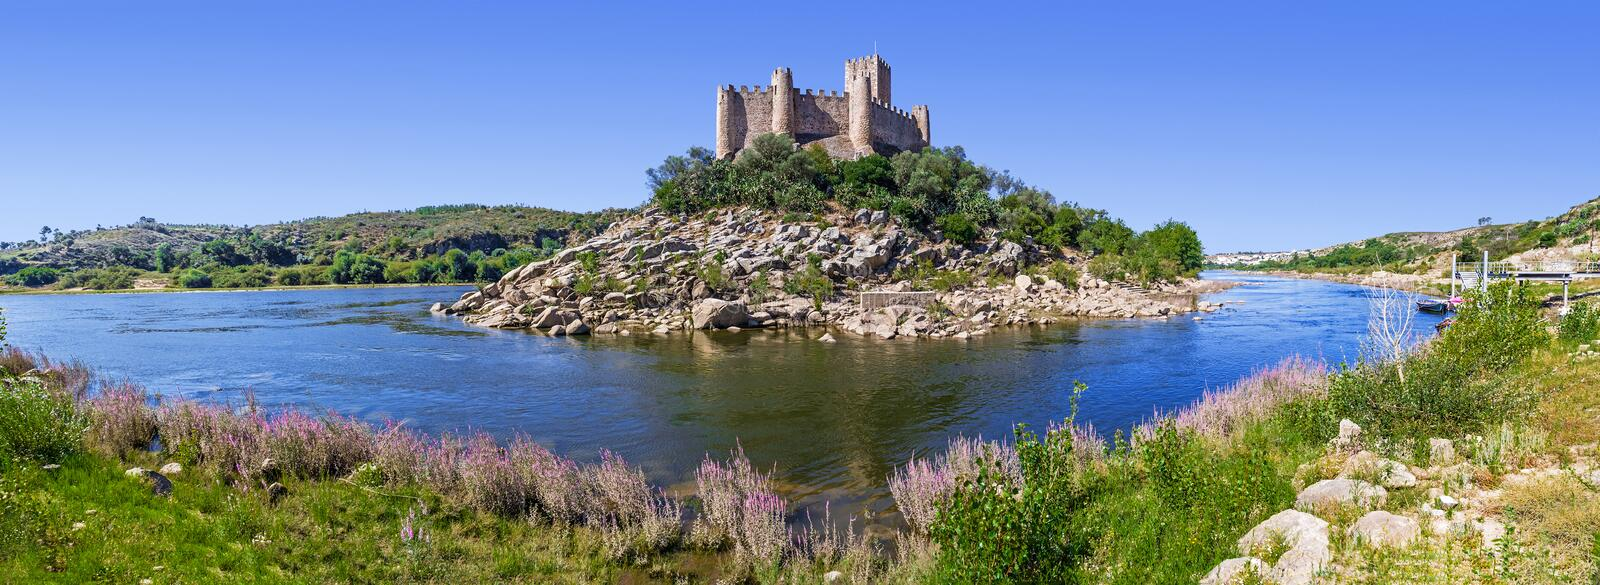 Panorama of the Templar Castle of Almourol and Tagus river. One of the most famous castles in Portugal. Built on a rocky island in the middle of Tagus river stock image